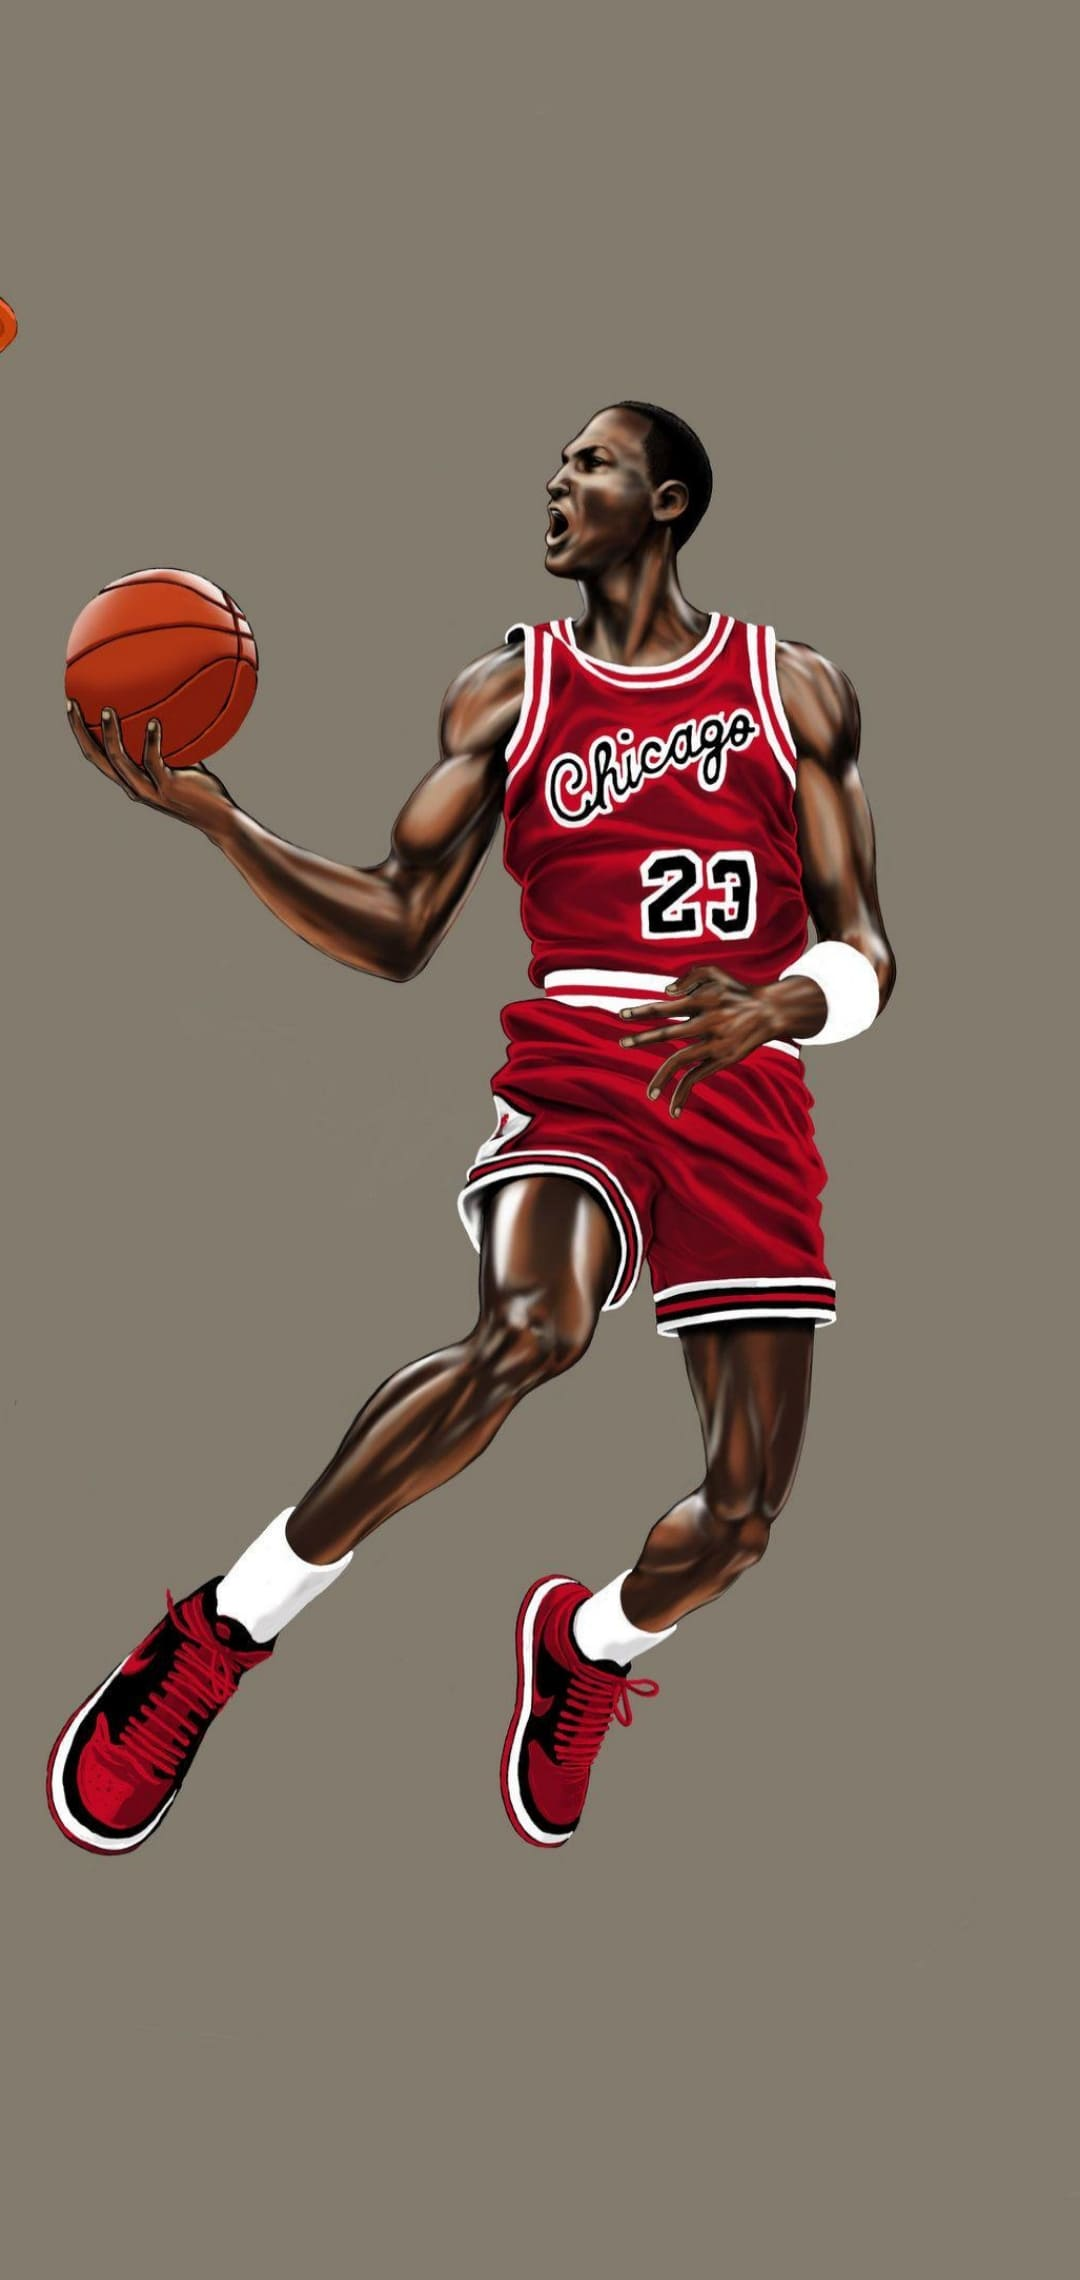 45 ᐈ Jordan Wallpapers Top Best Hd Pictures Of Michael Jordan 2020